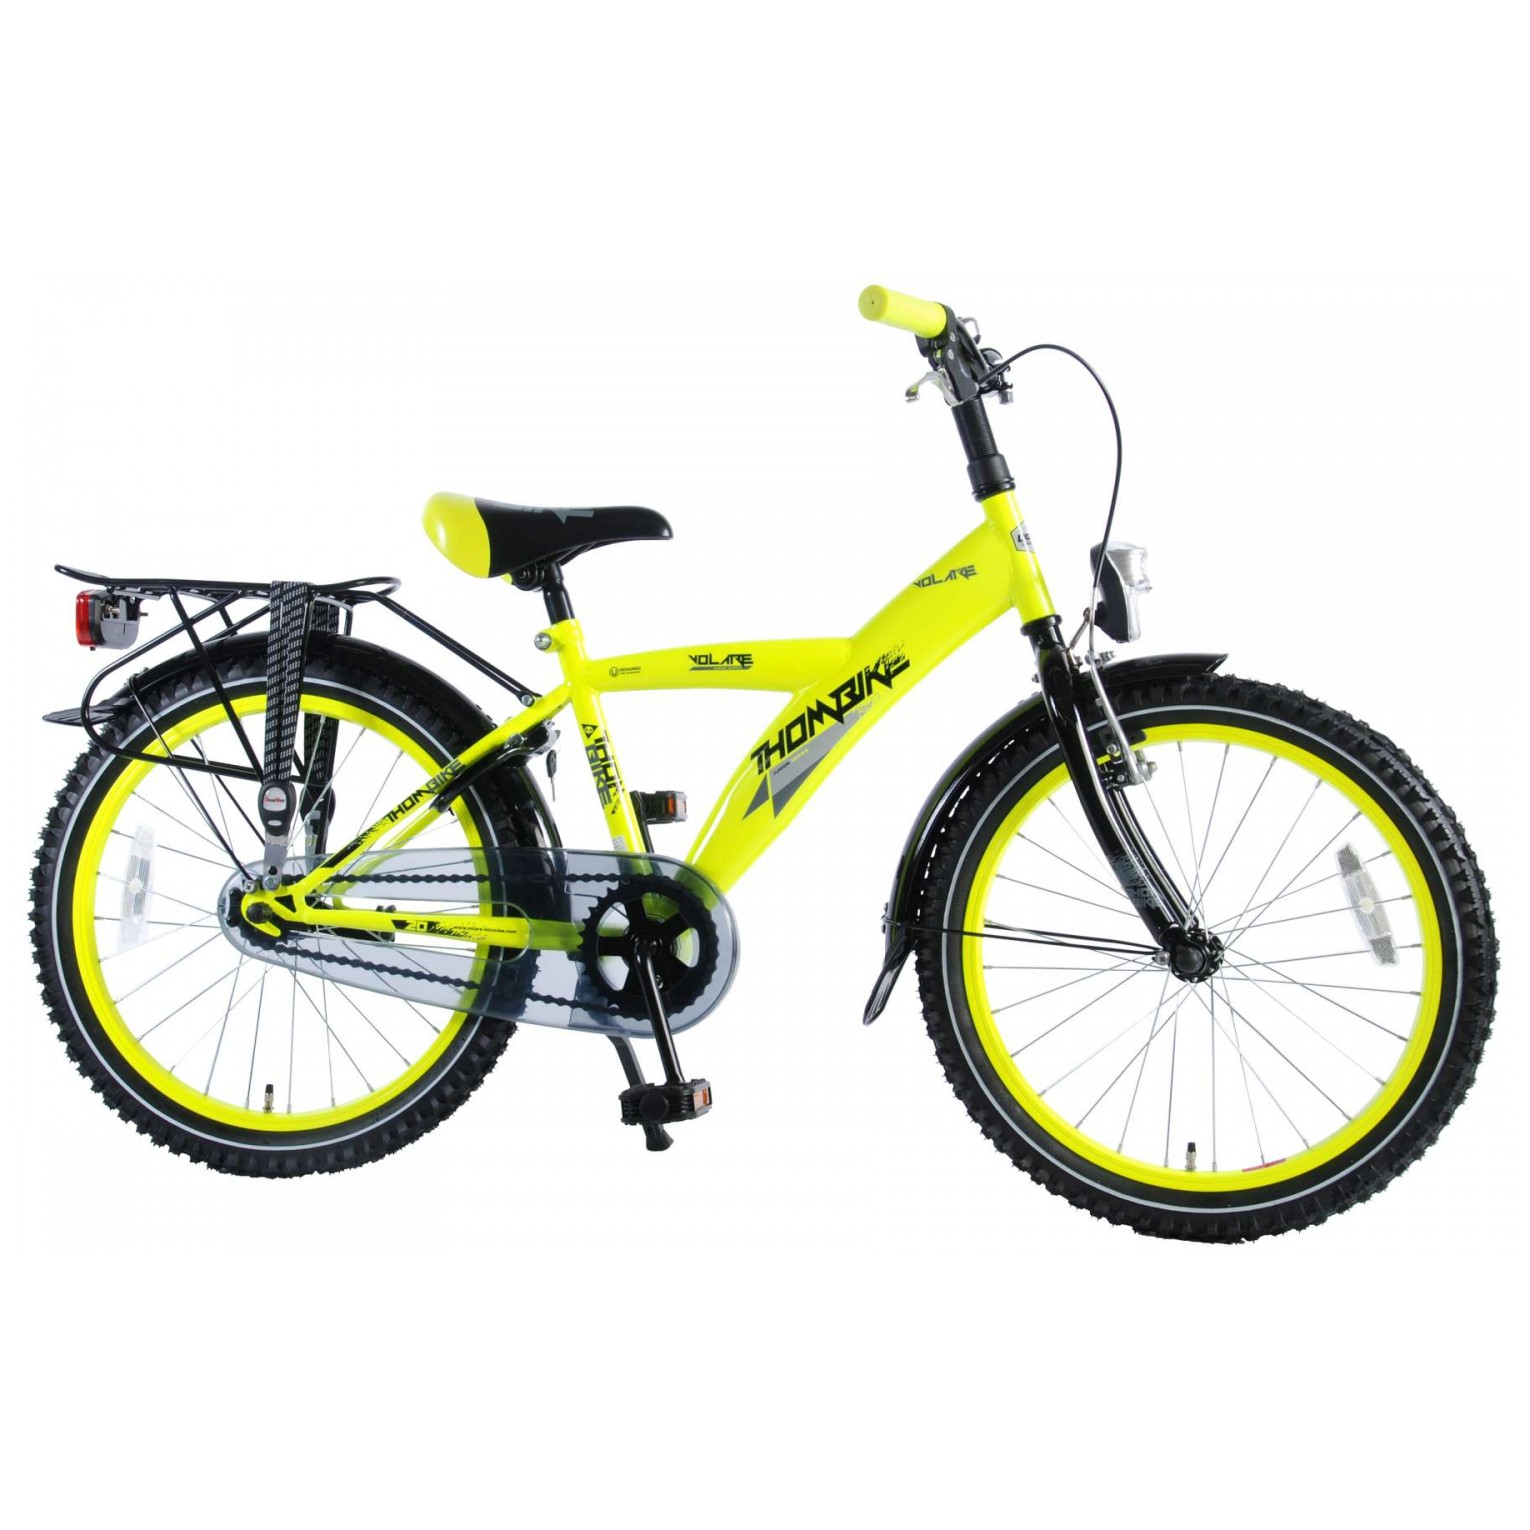 Volare Thombike City Fiets - 20 inch - Neon Geel